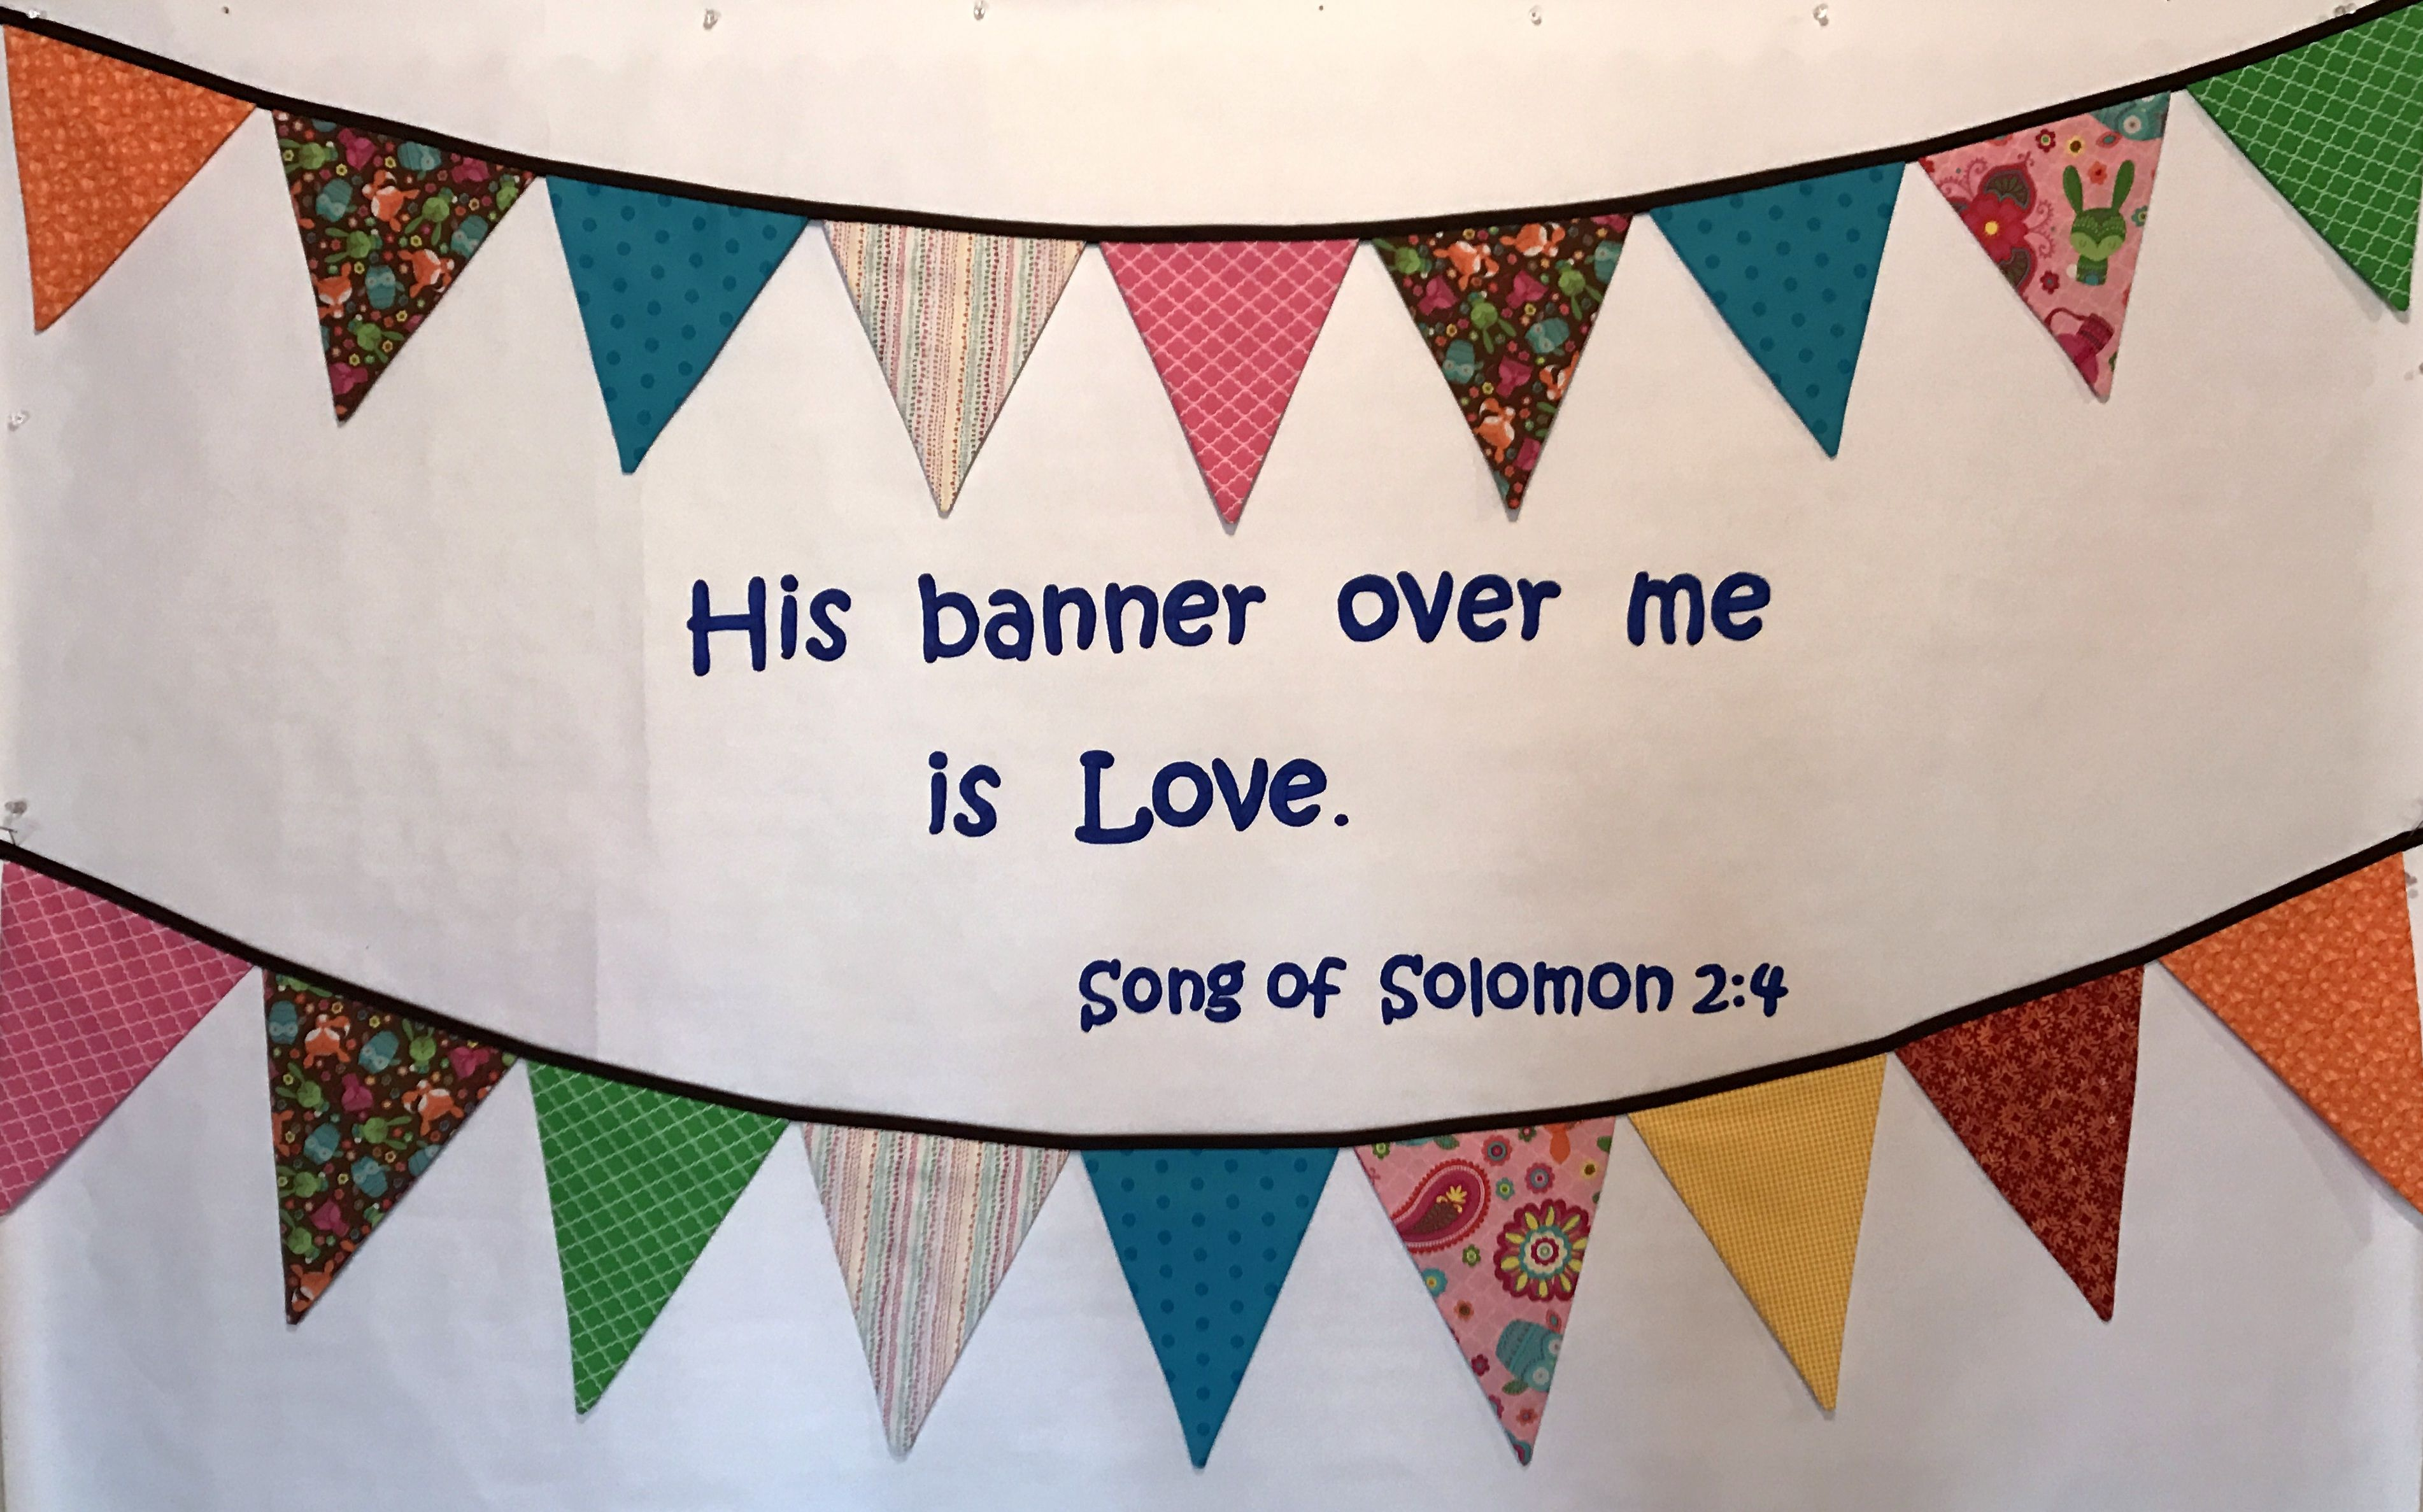 His banner over me is love. Adapted from Song of Solomon 2:4